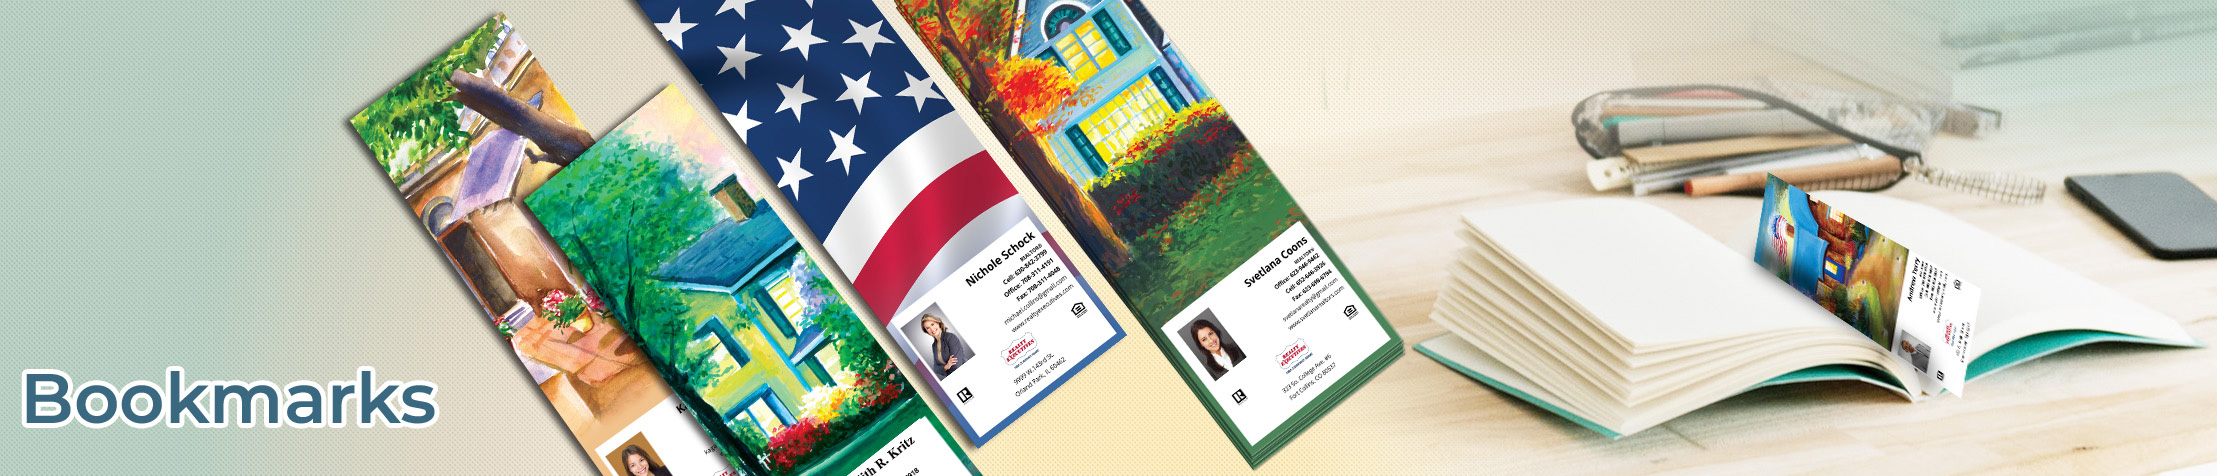 Realty Executives Real Estate Bookmarks - Realty Executives  custom realtor bookmarks | BestPrintBuy.com